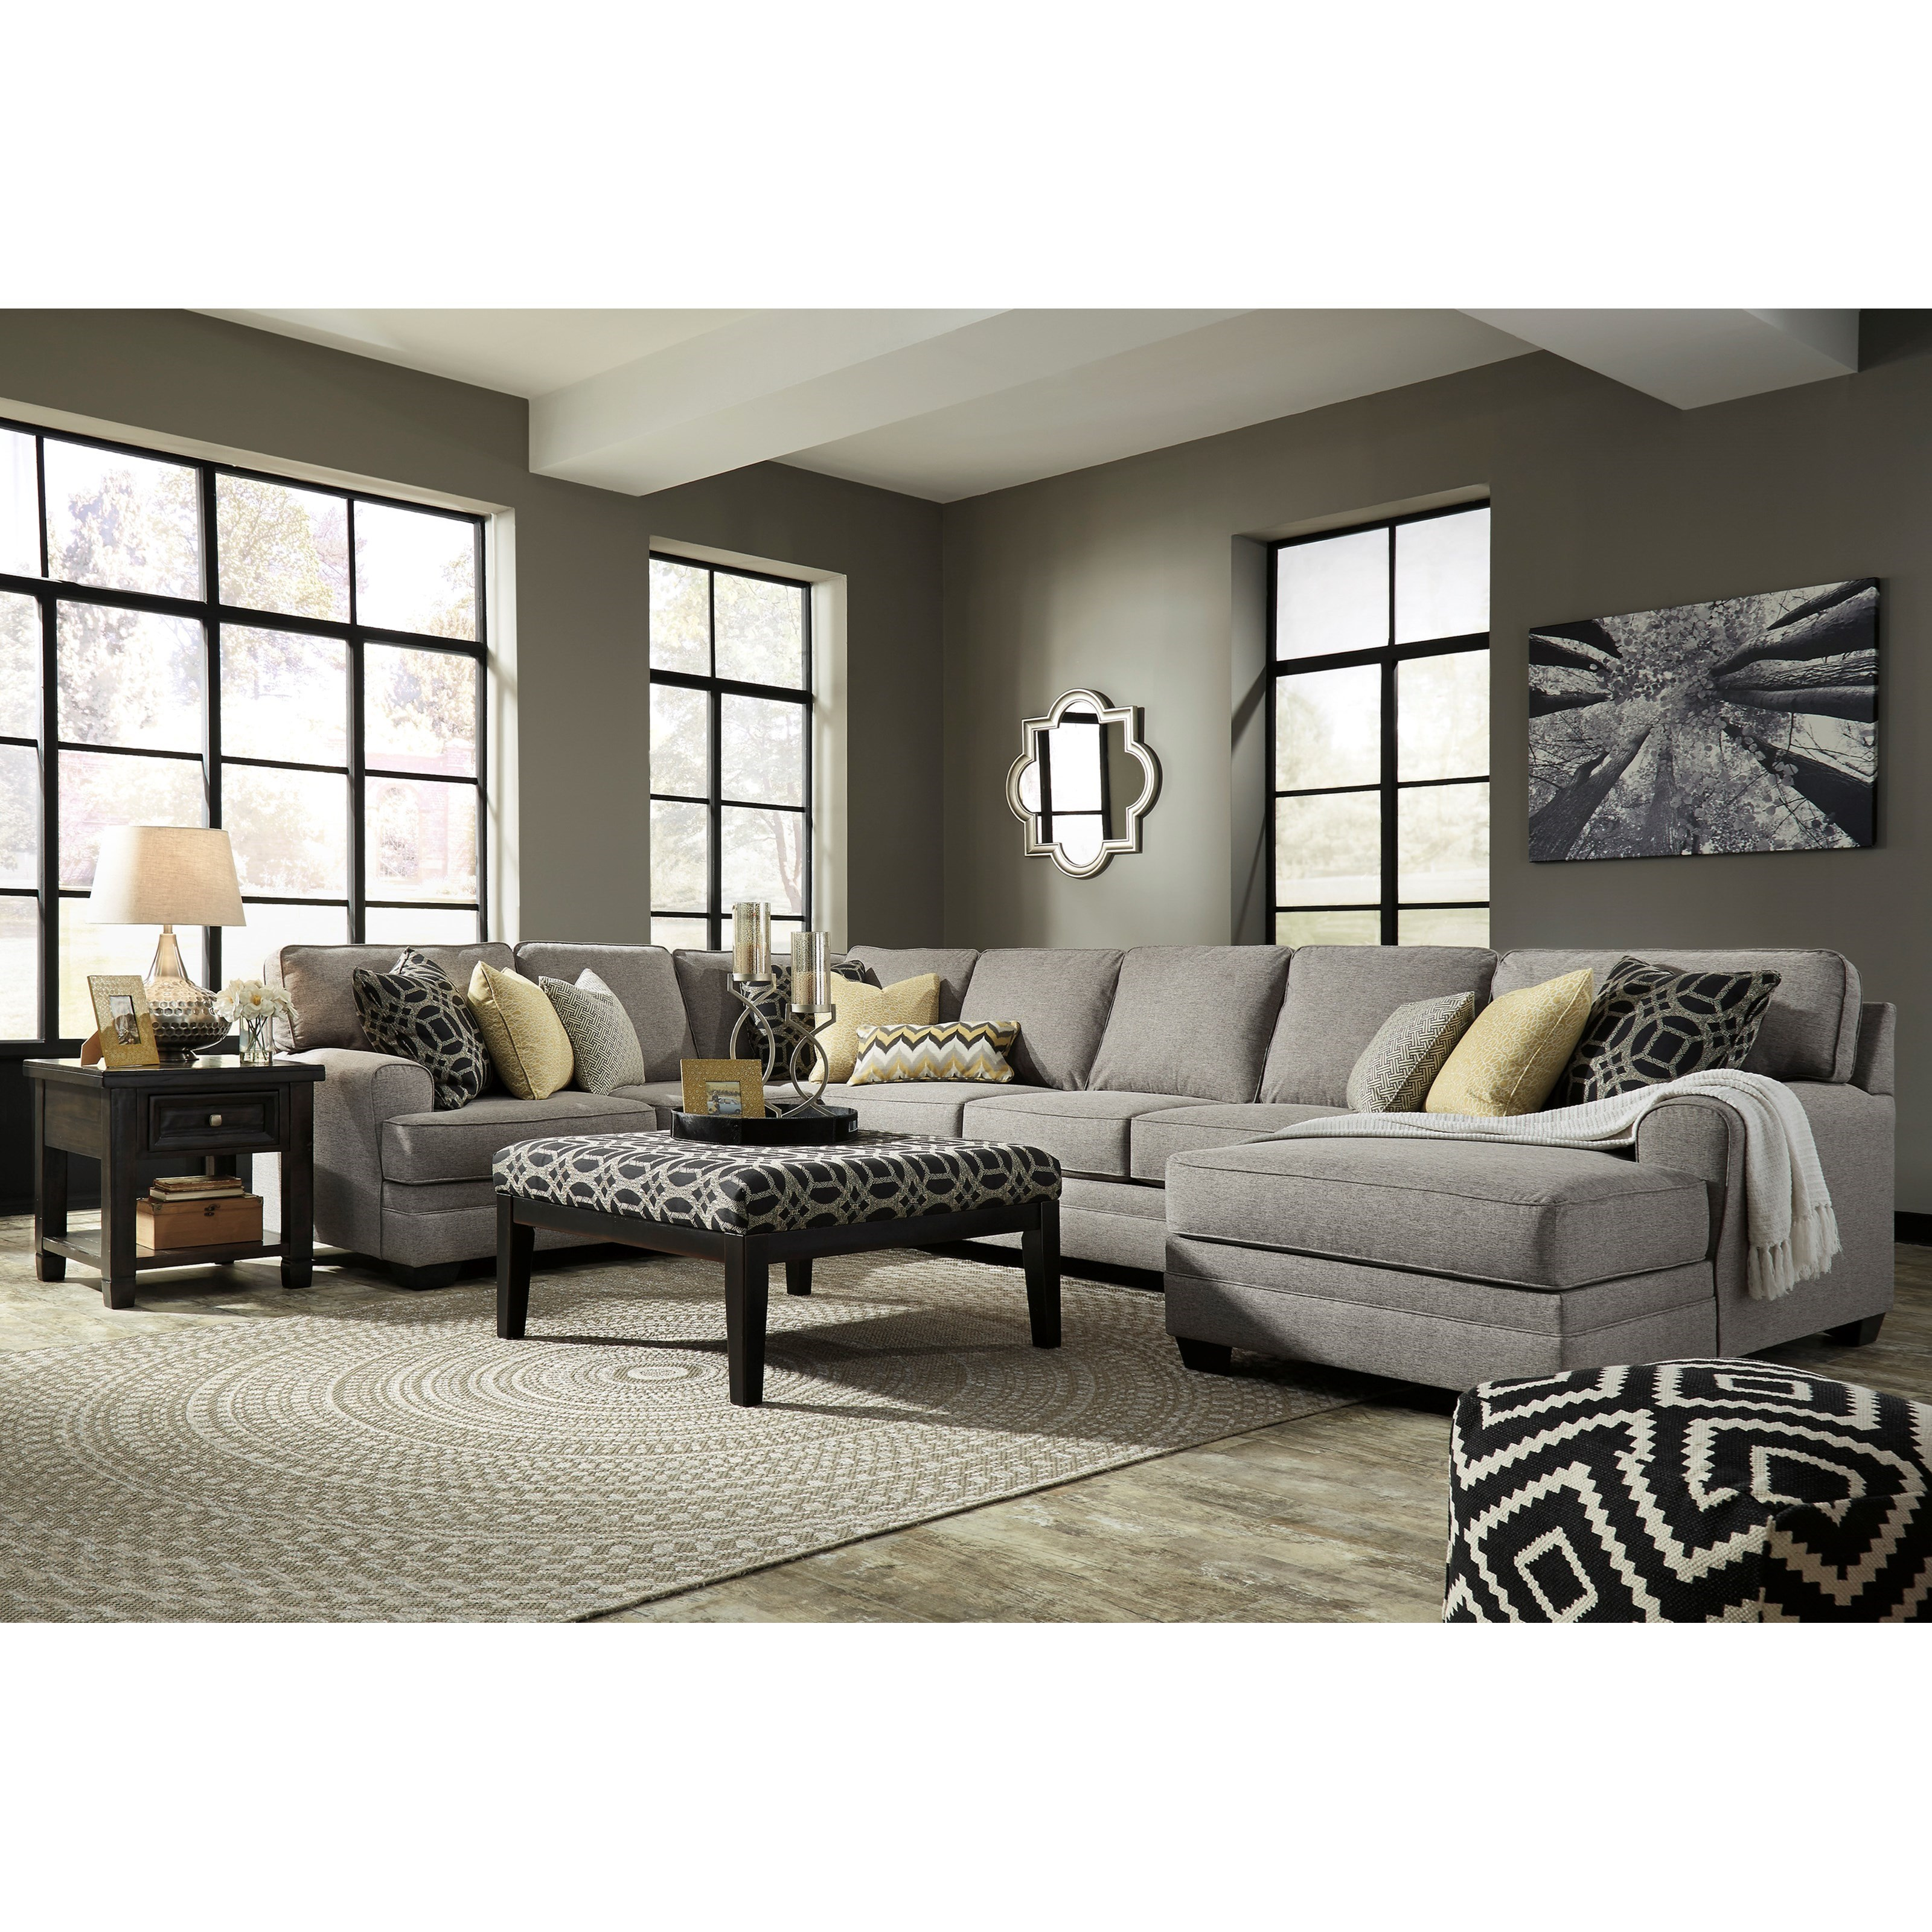 Benchcraft Cresson Stationary Living Room Group - Item Number: 54907 Living Room Group 11